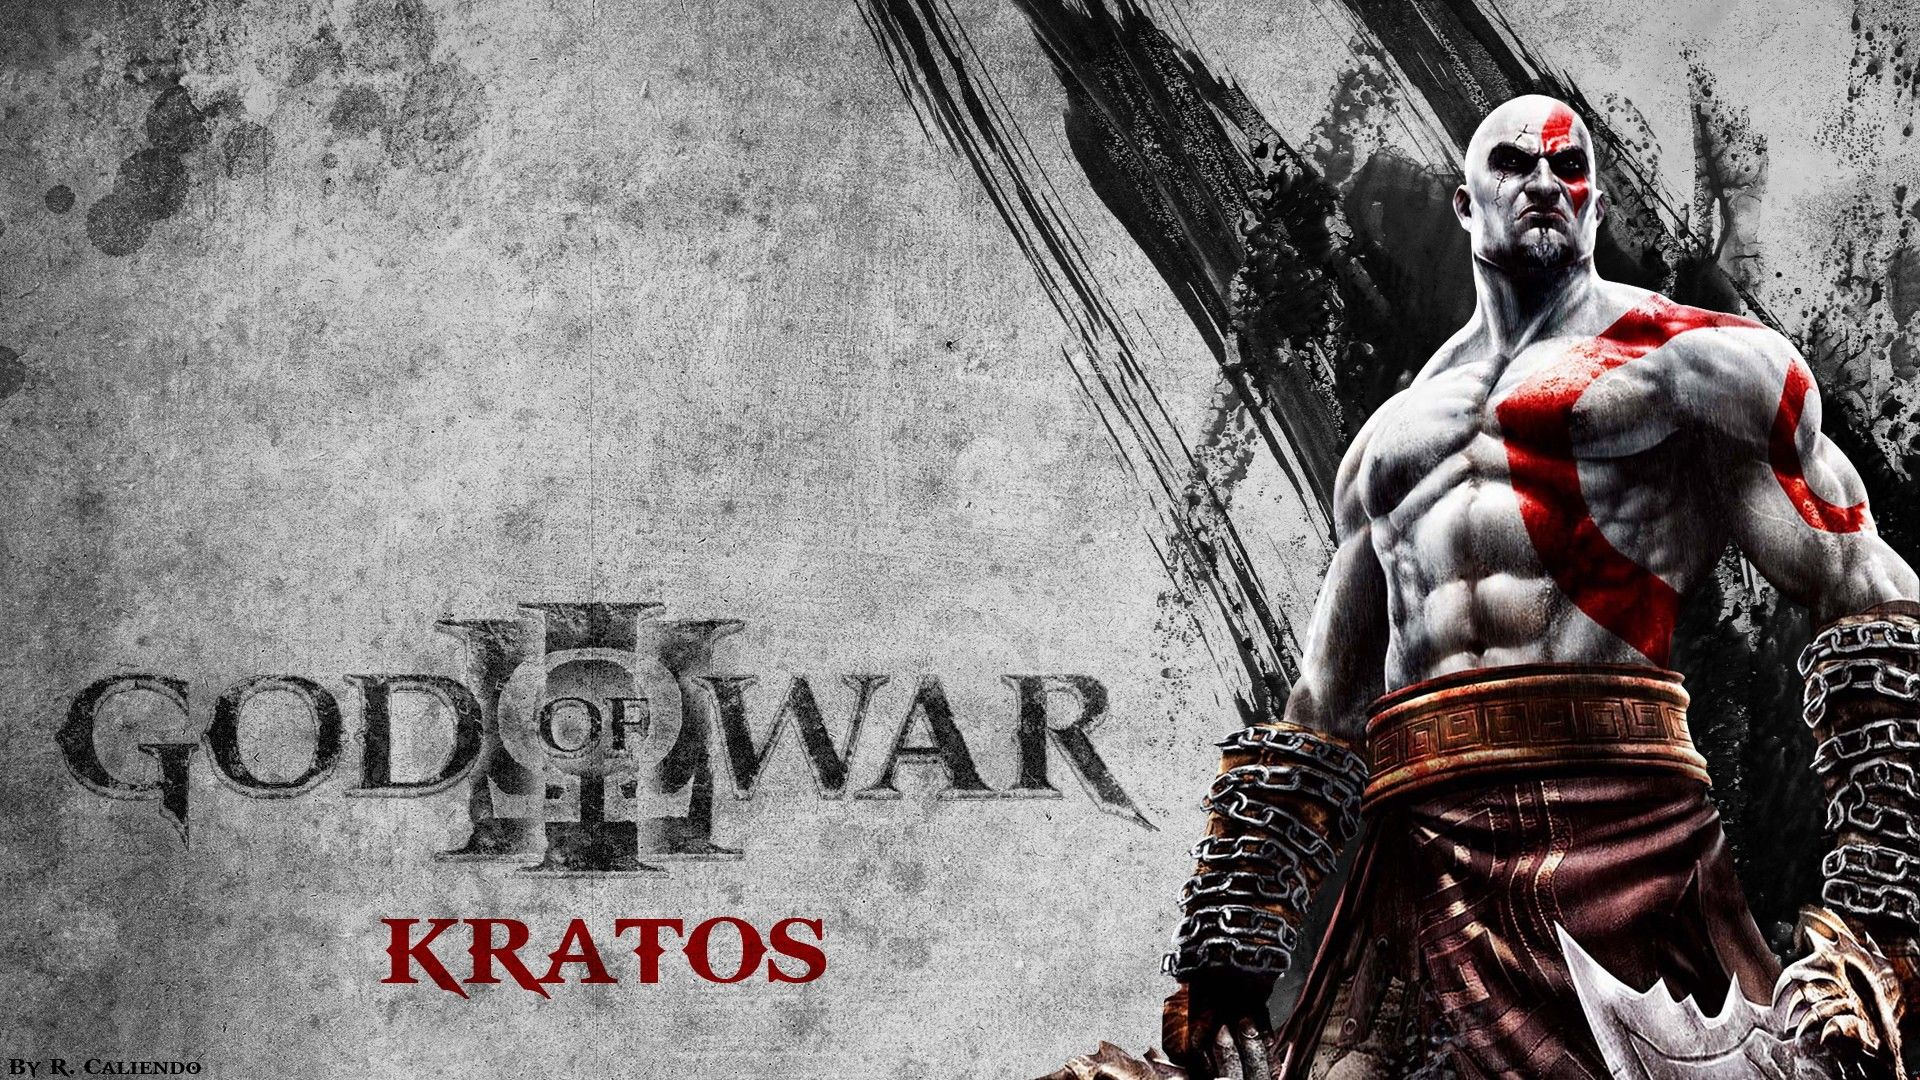 god of war iii - kratos | wallpapers | pinterest | videogames